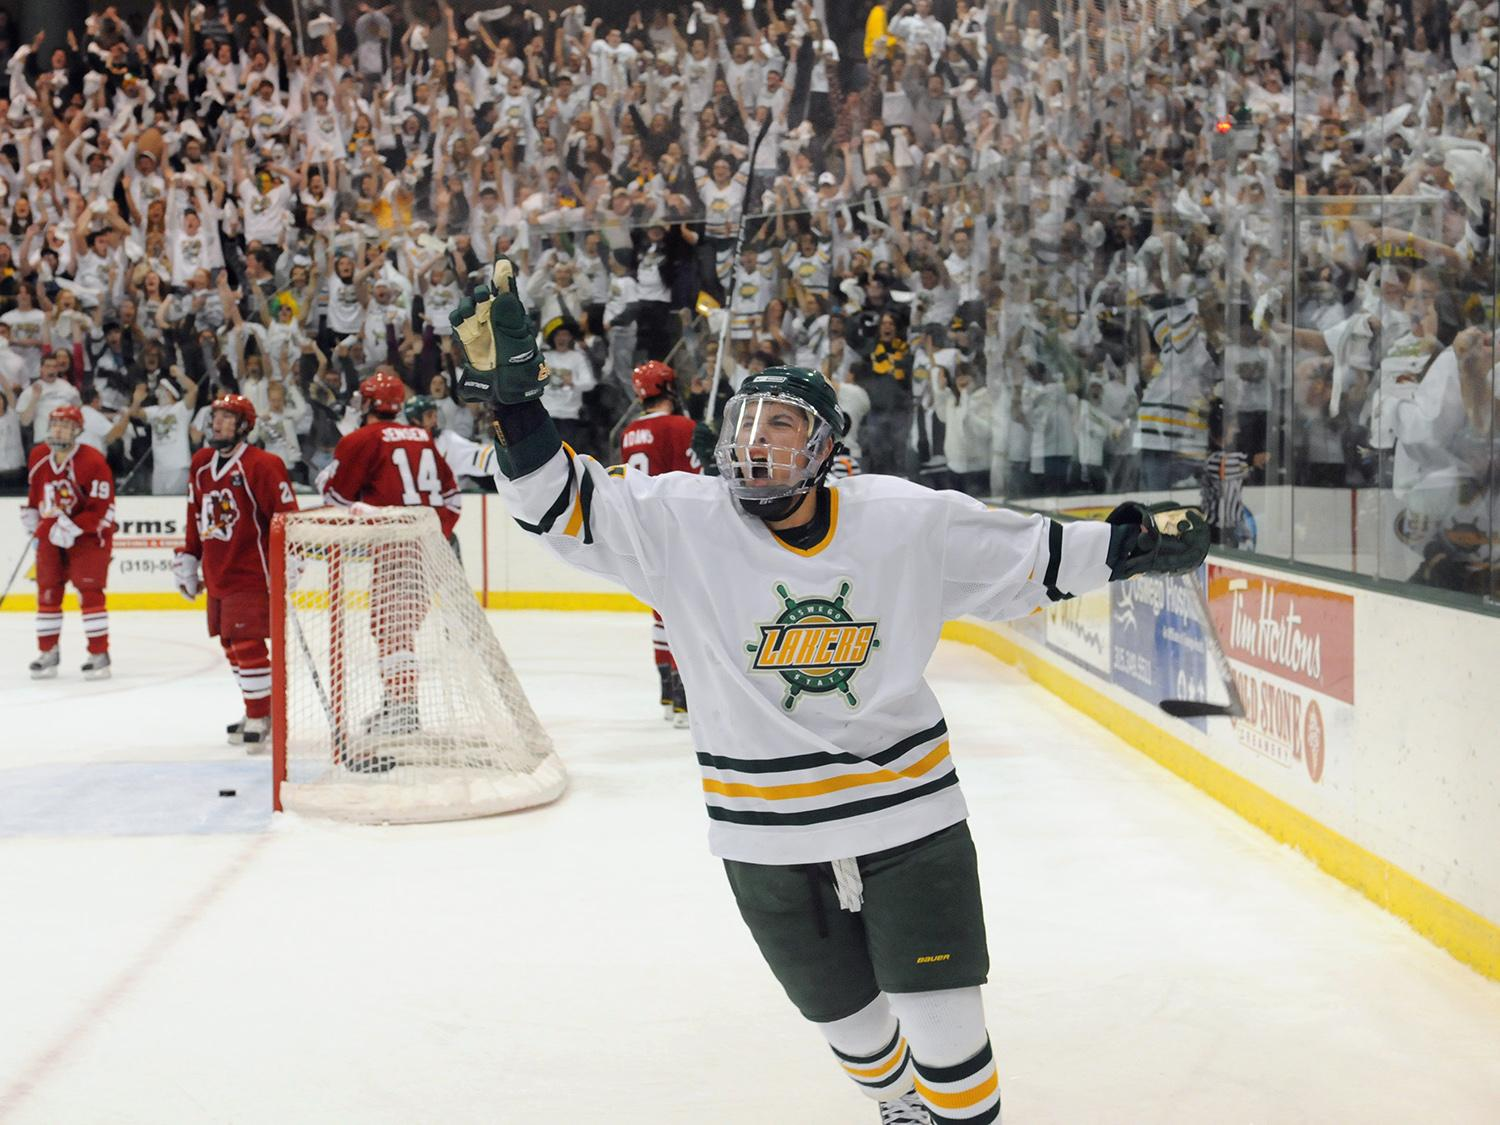 Laker hockey player celebrates along with Oswego fans